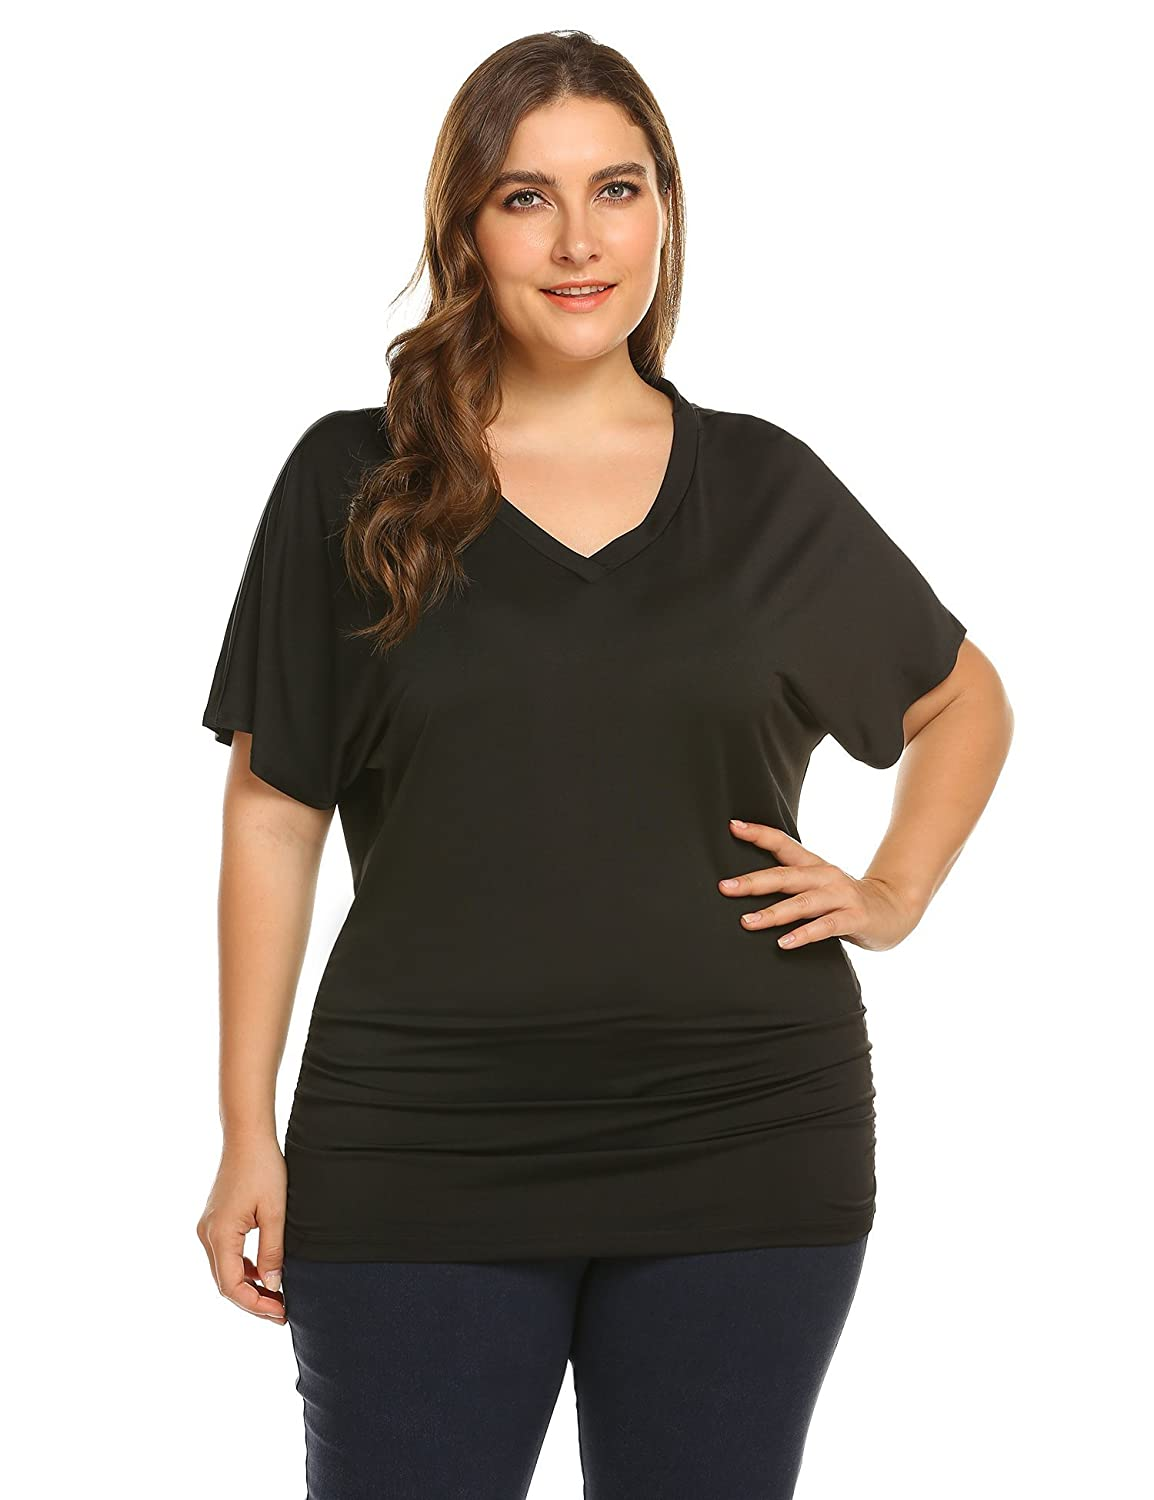 d9dea694b9db The high-quality rayon spandex drapes over the waistline without clinging  to your body, plus size size make you relax,soft, lightweight and  breathable.